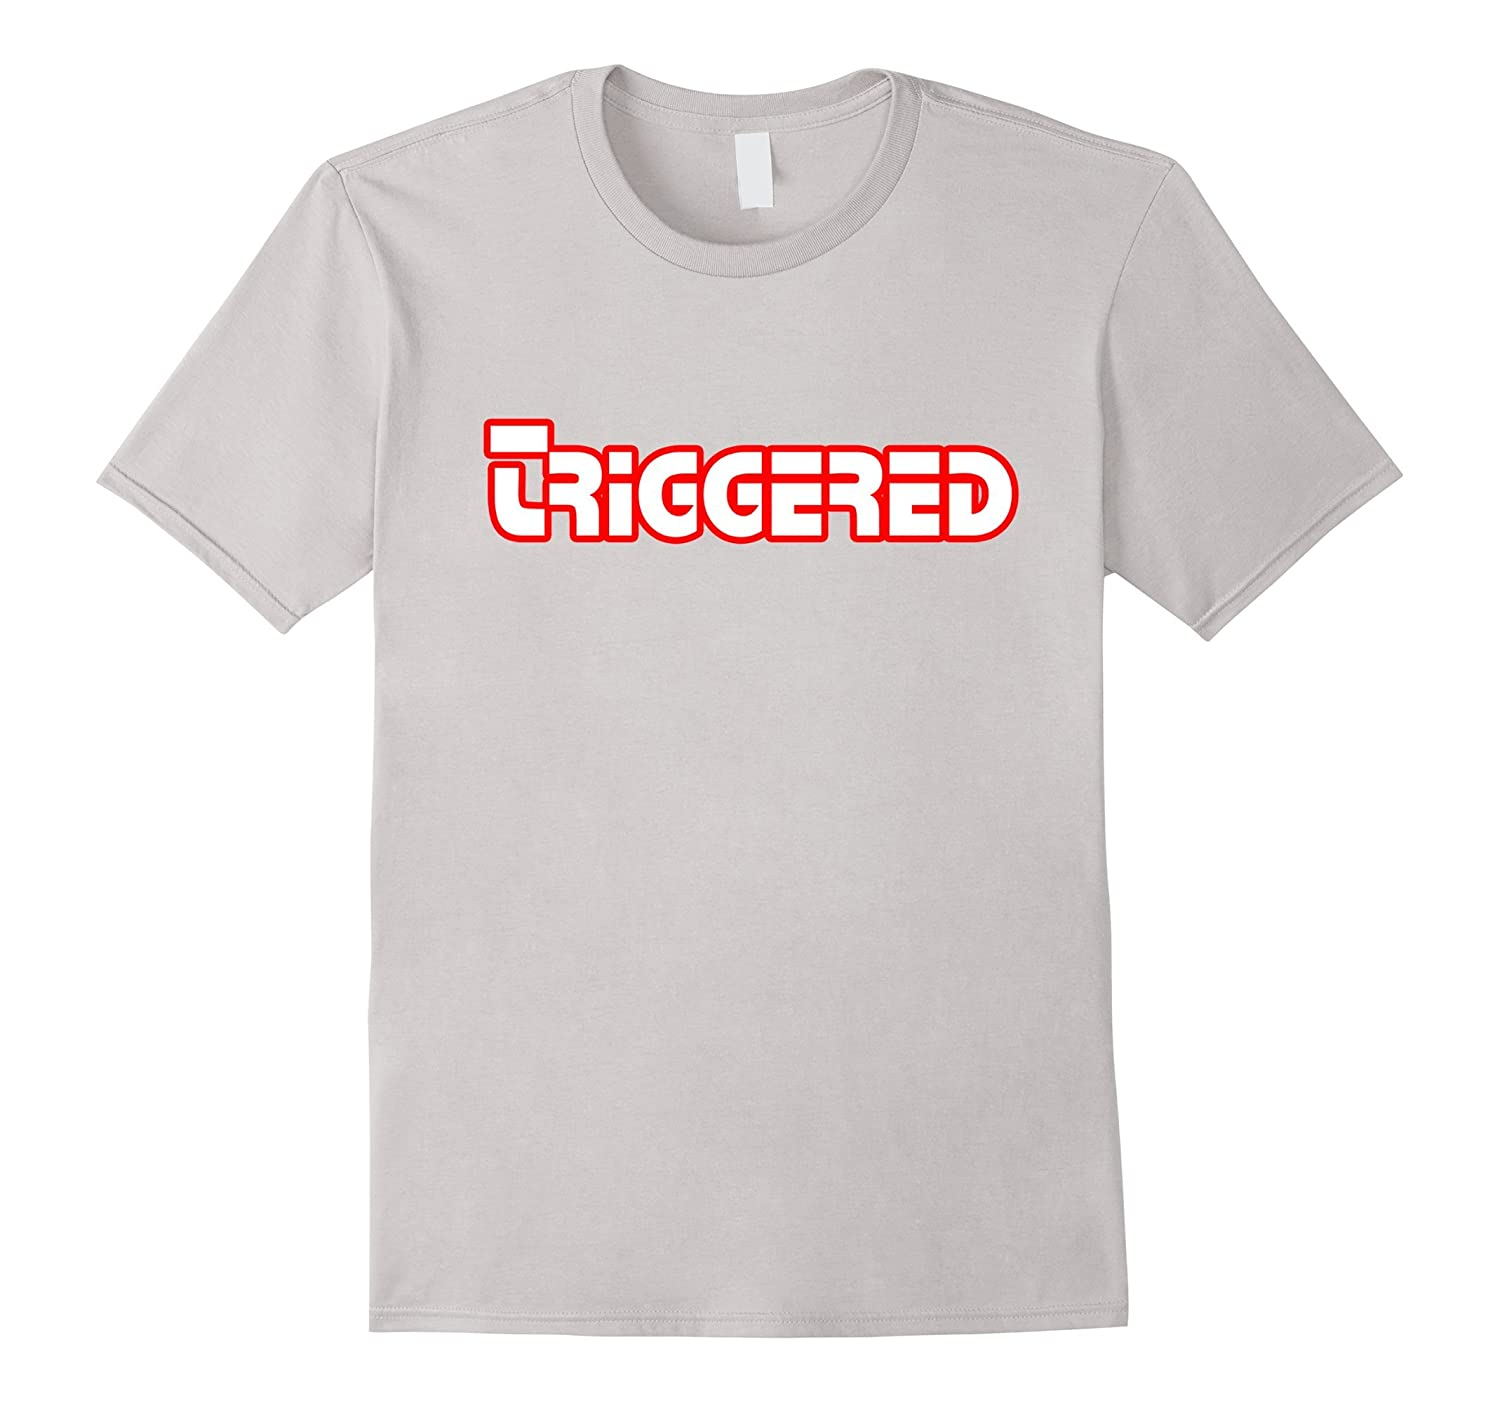 Fun D Mental - Triggered T-shirt-BN